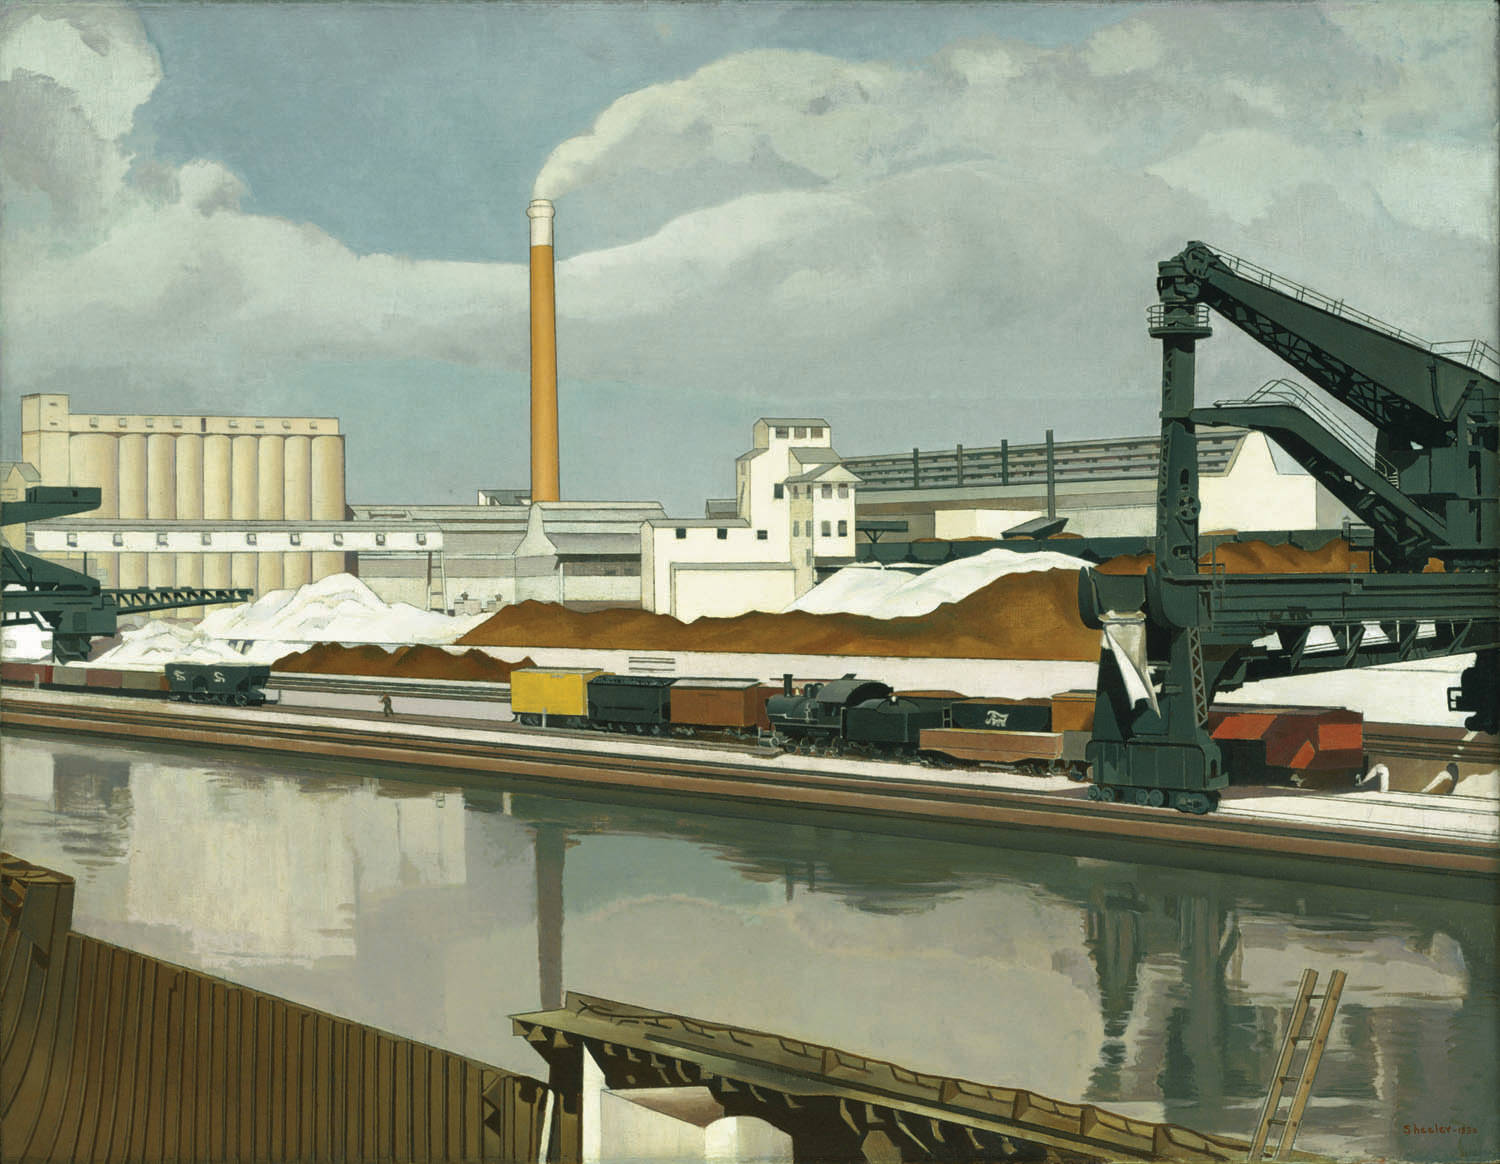 Charles Sheeler, American Landscape, 1930, as reproduced in Art in Time